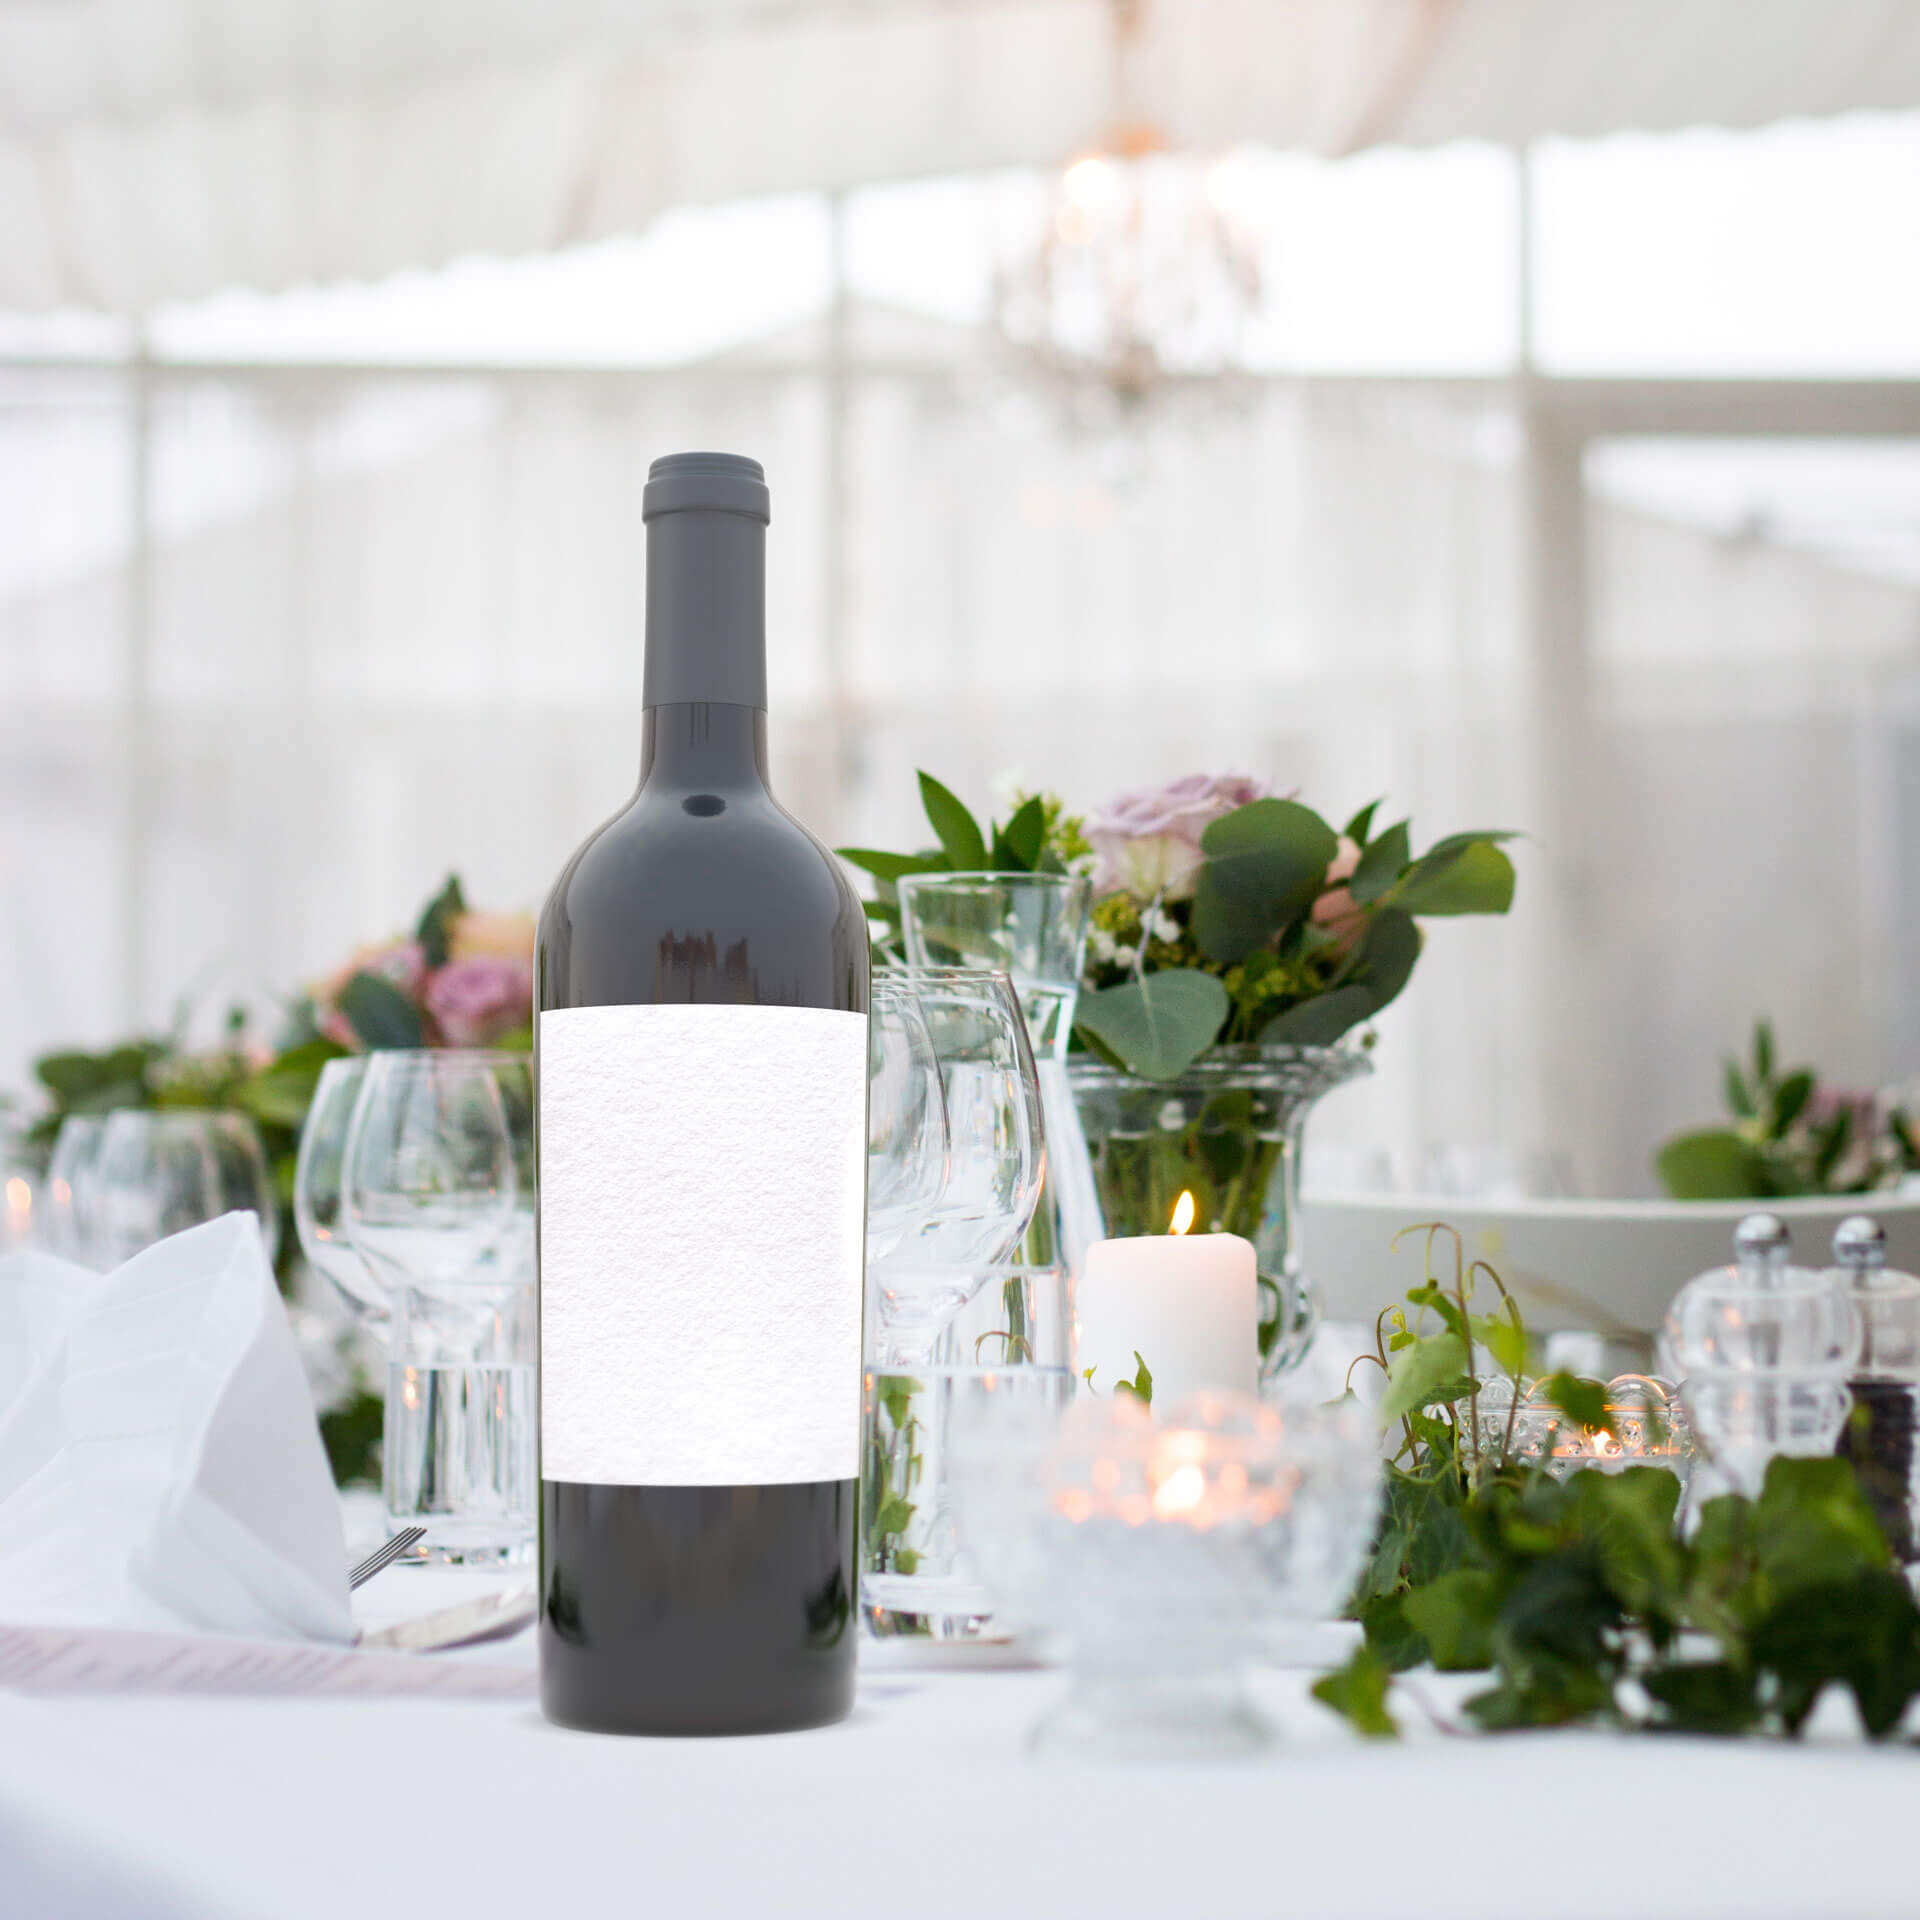 White table with candles